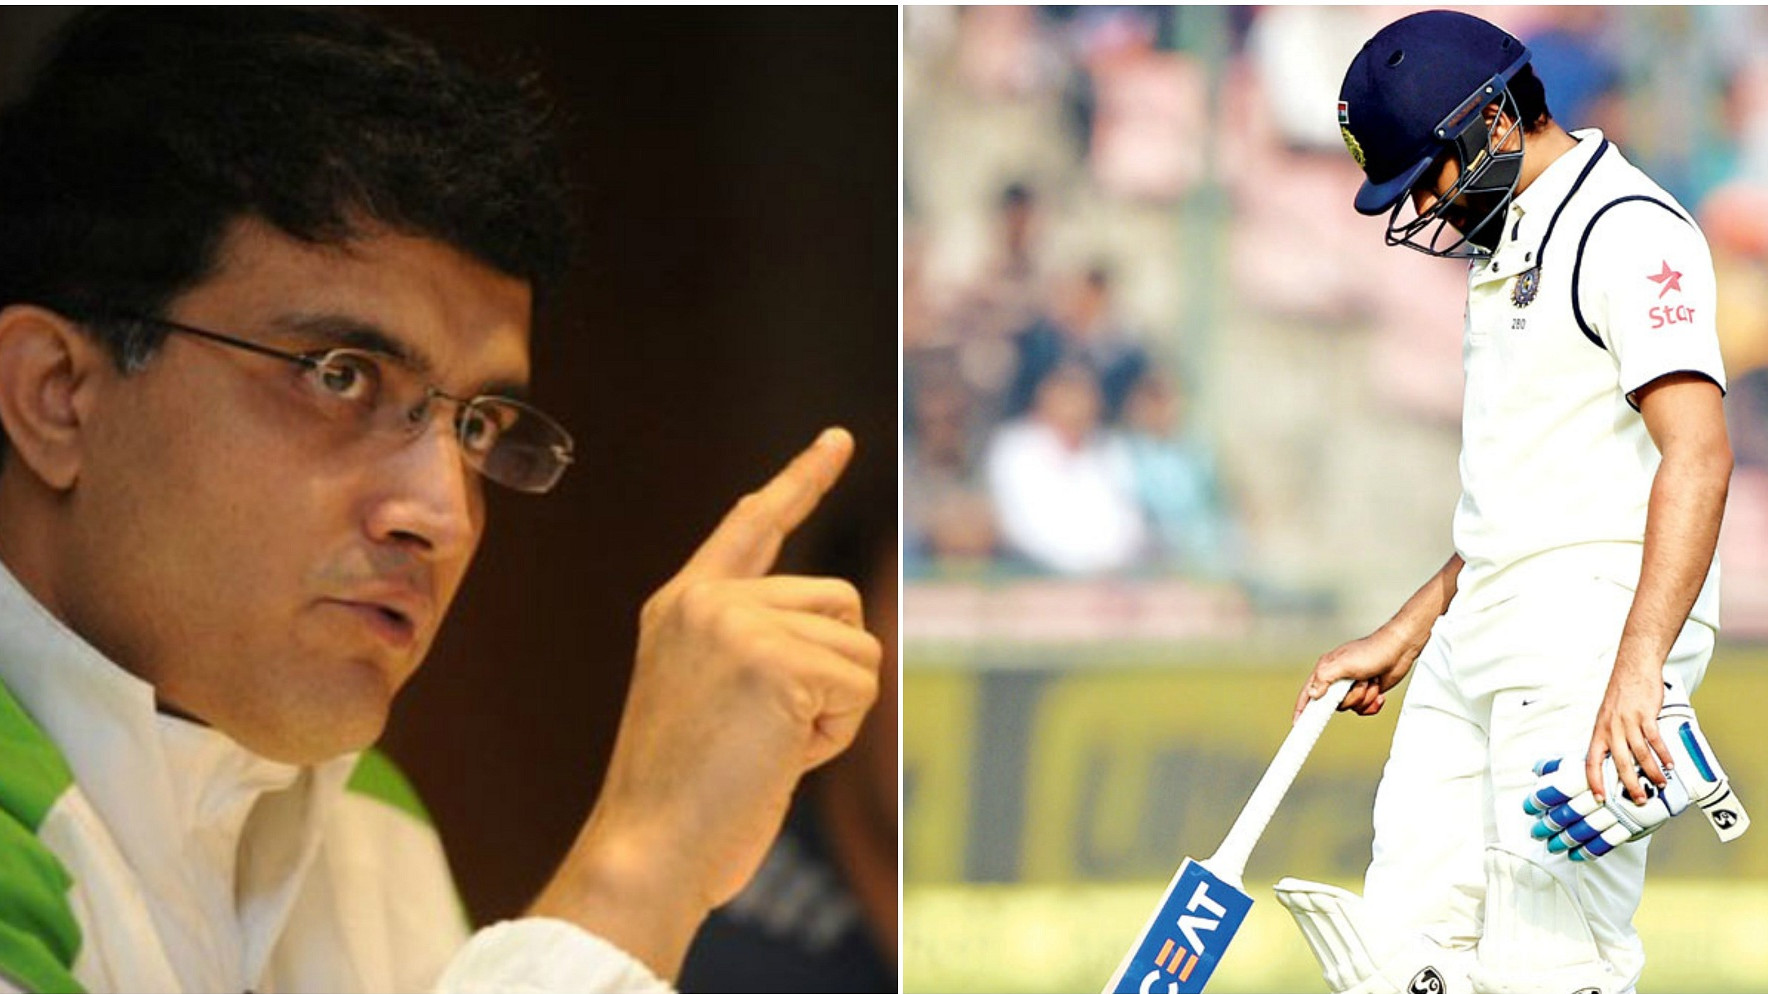 IND v WI 2018: Sourav Ganguly miffed by Rohit Sharma's omission from India's Test squad